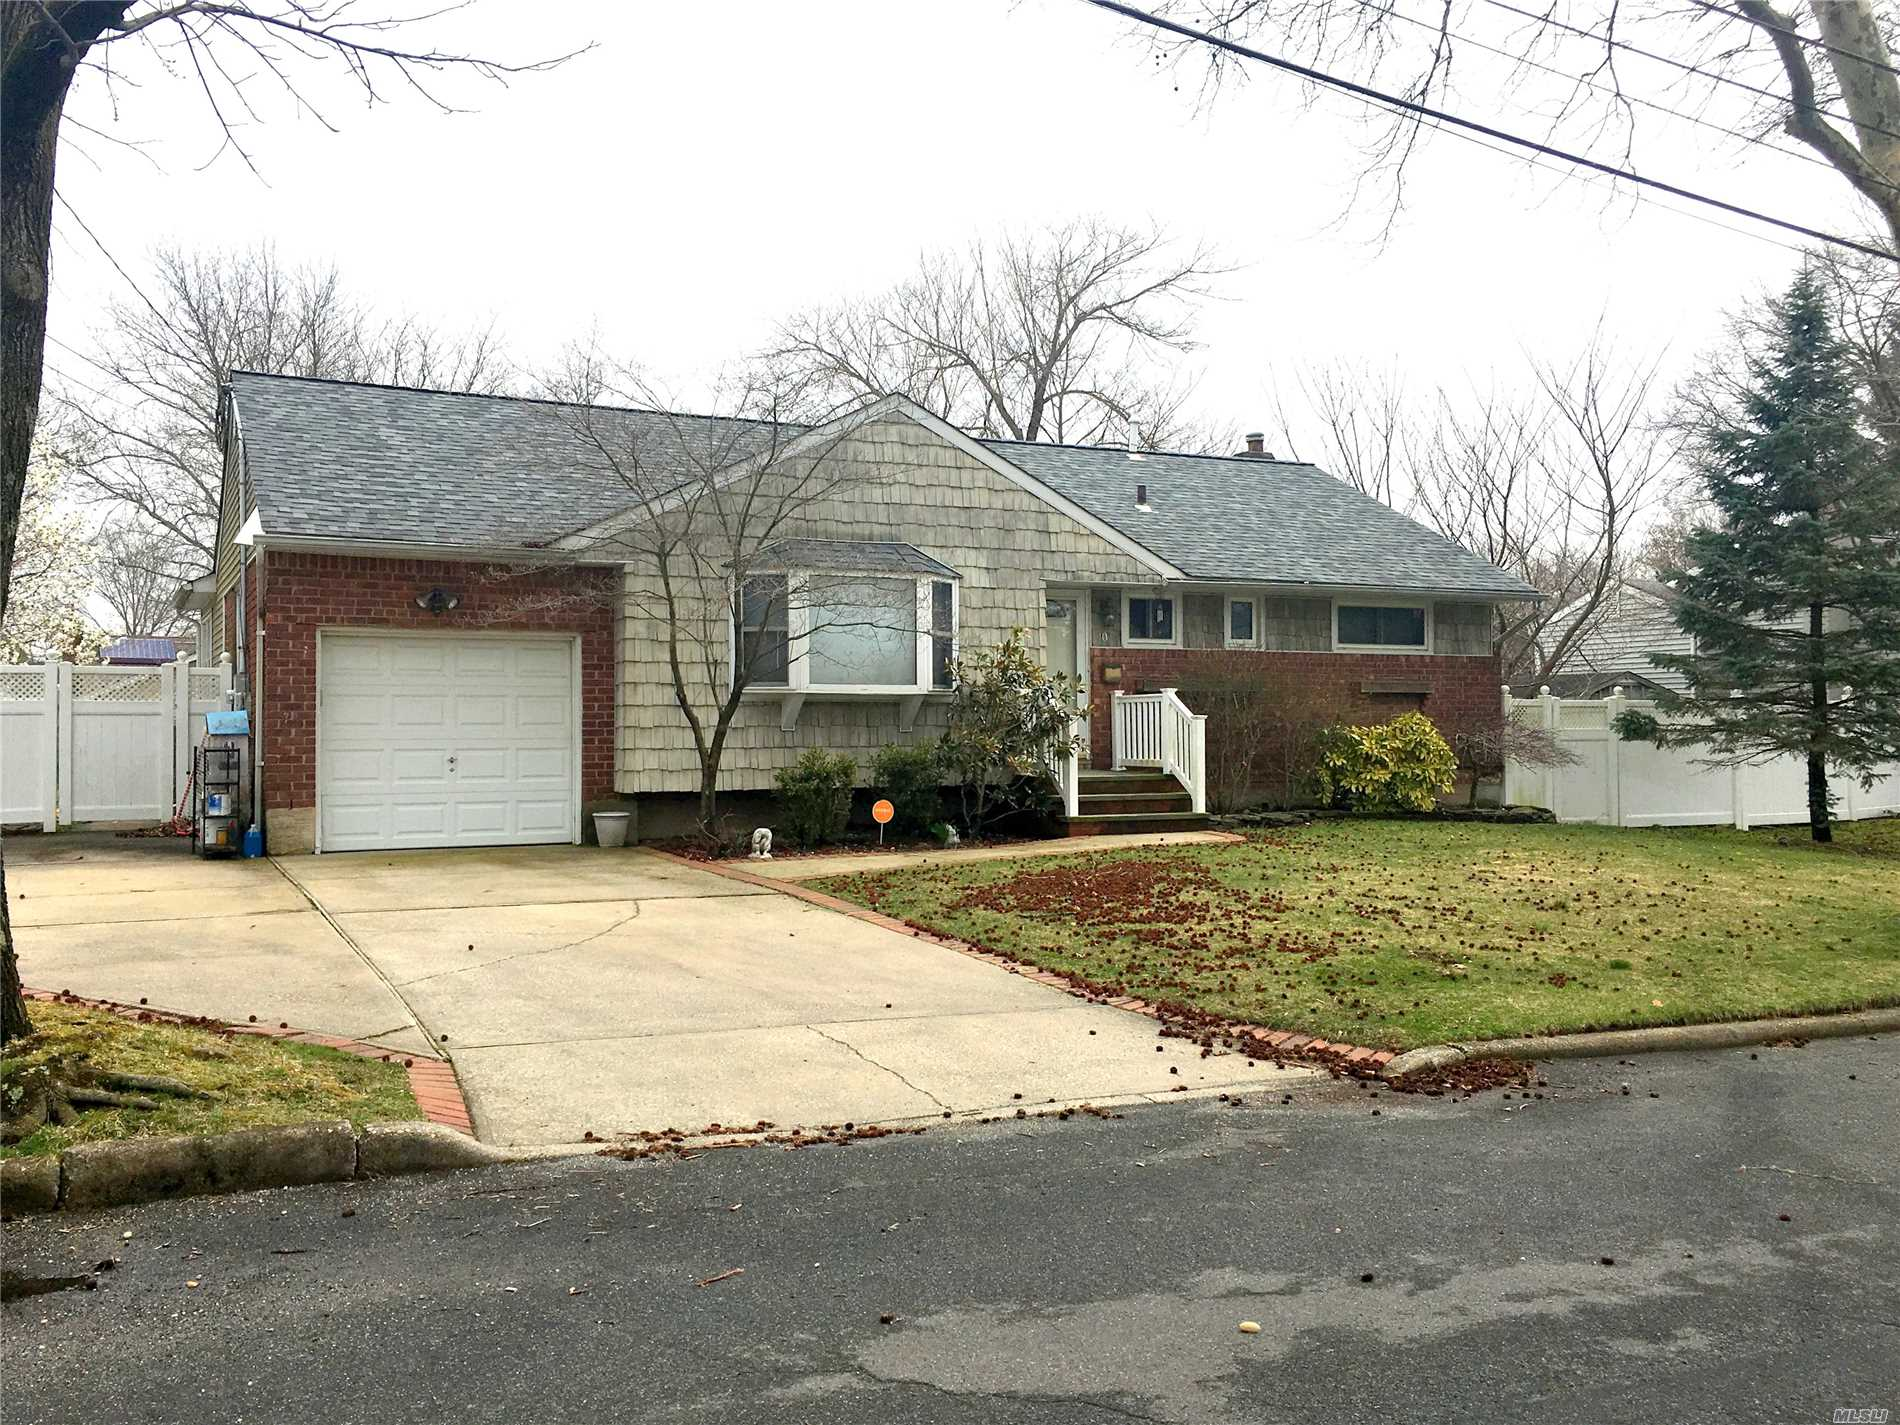 Perfect Home Spacious And Bright! Huge Eat In Kitchen W/Vaulted Ceilings And Skylights.. Den W/Fplc Hardwood Floors Throughout. Large Finished Basement With Media Room And Plenty Of Storage.. Great Backyard Perfect For Entertaining. Newer Roof W/Warranty & Led Lighting. Famed Blue Ribbons Commack Schools. Perfect For Starter Or Downsizing.. Close To All Shed Is A Gift..